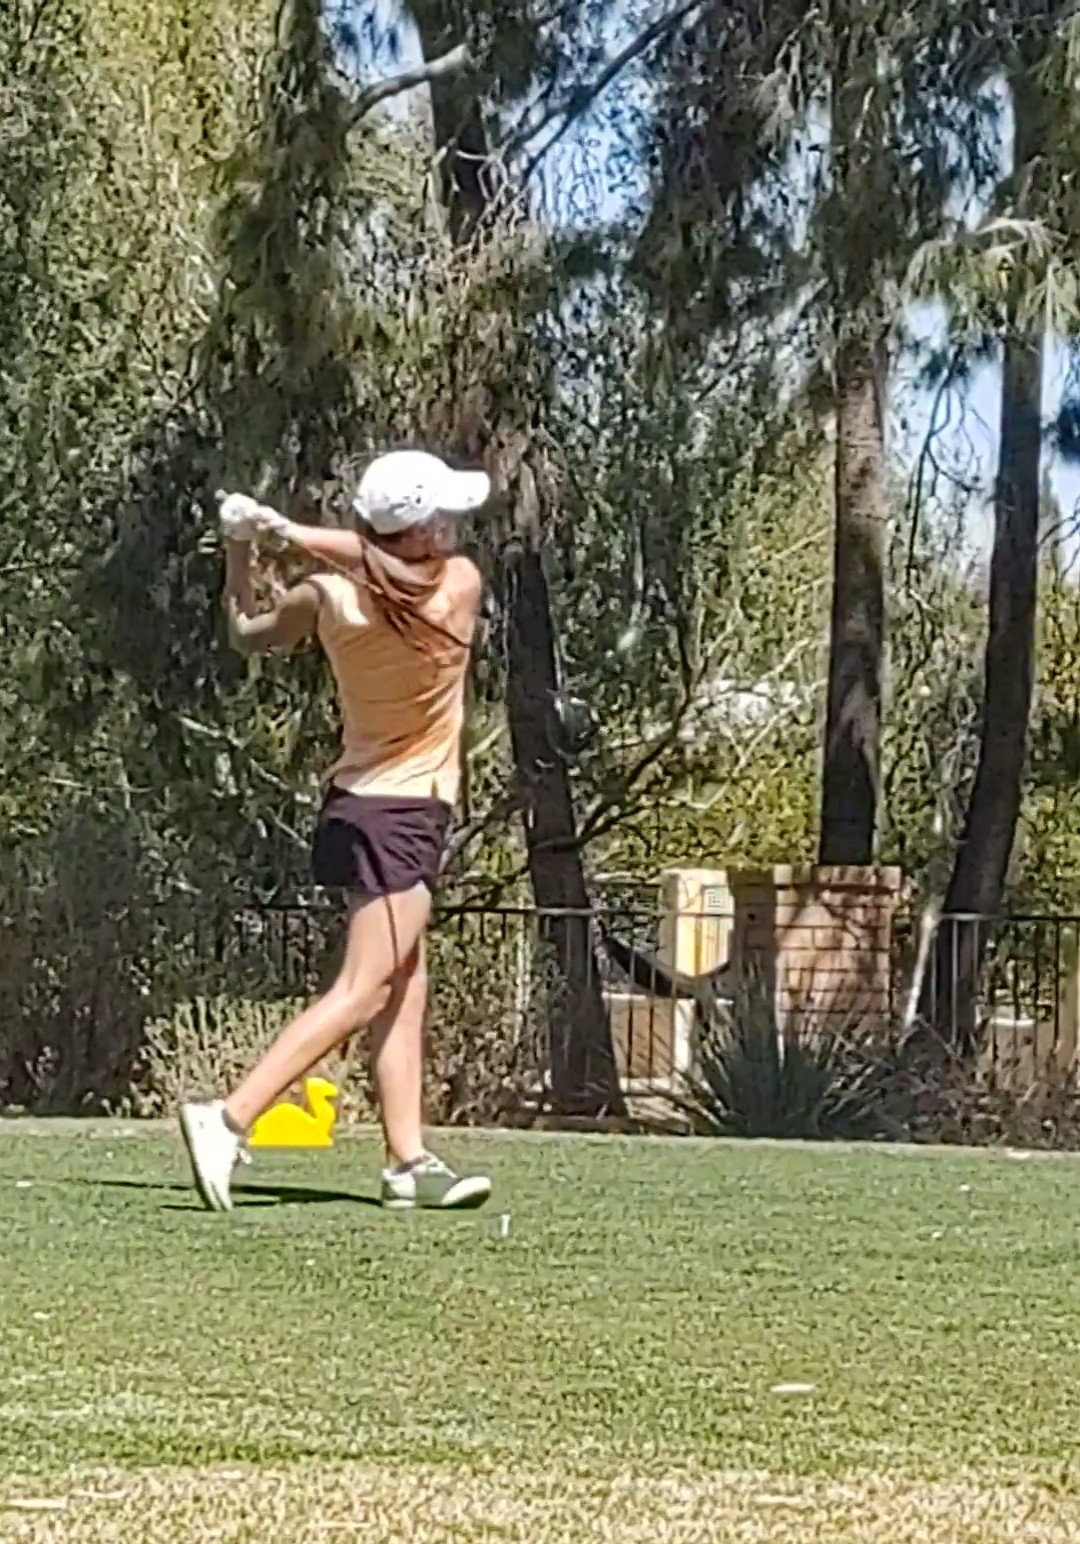 Aly Blomberg places 2nd at NWSC Golf match